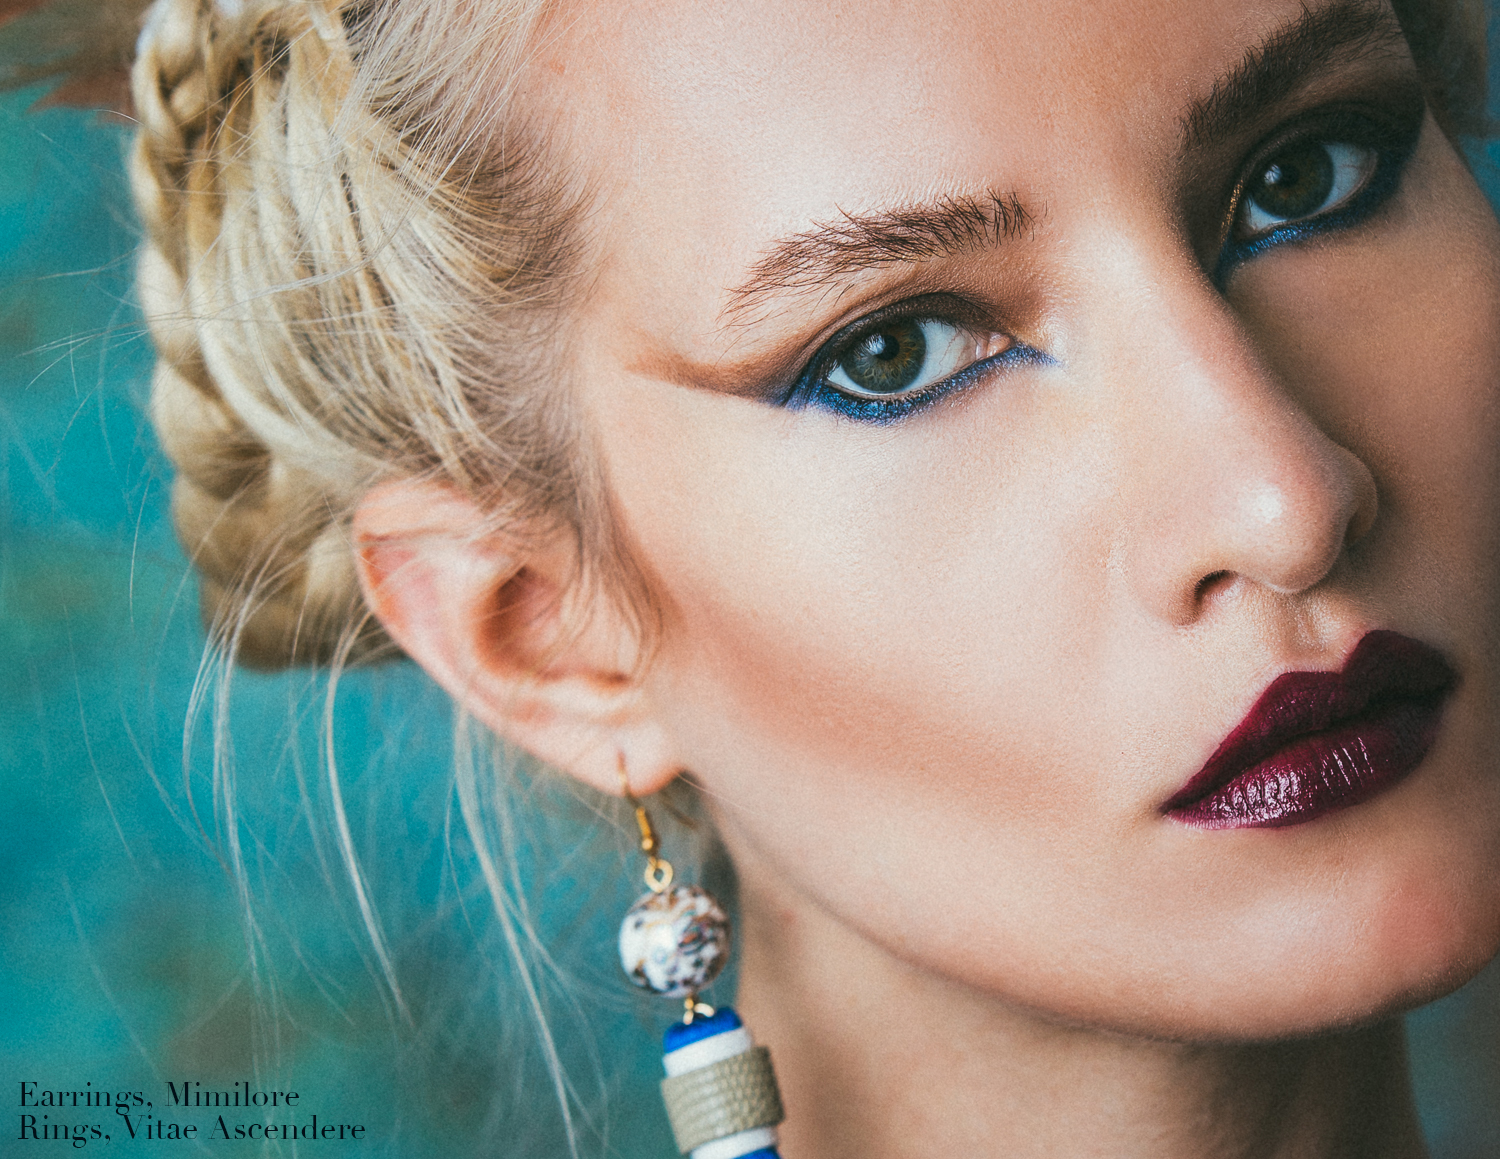 Duo-Linn-Beauty-Editorial-01.jpg